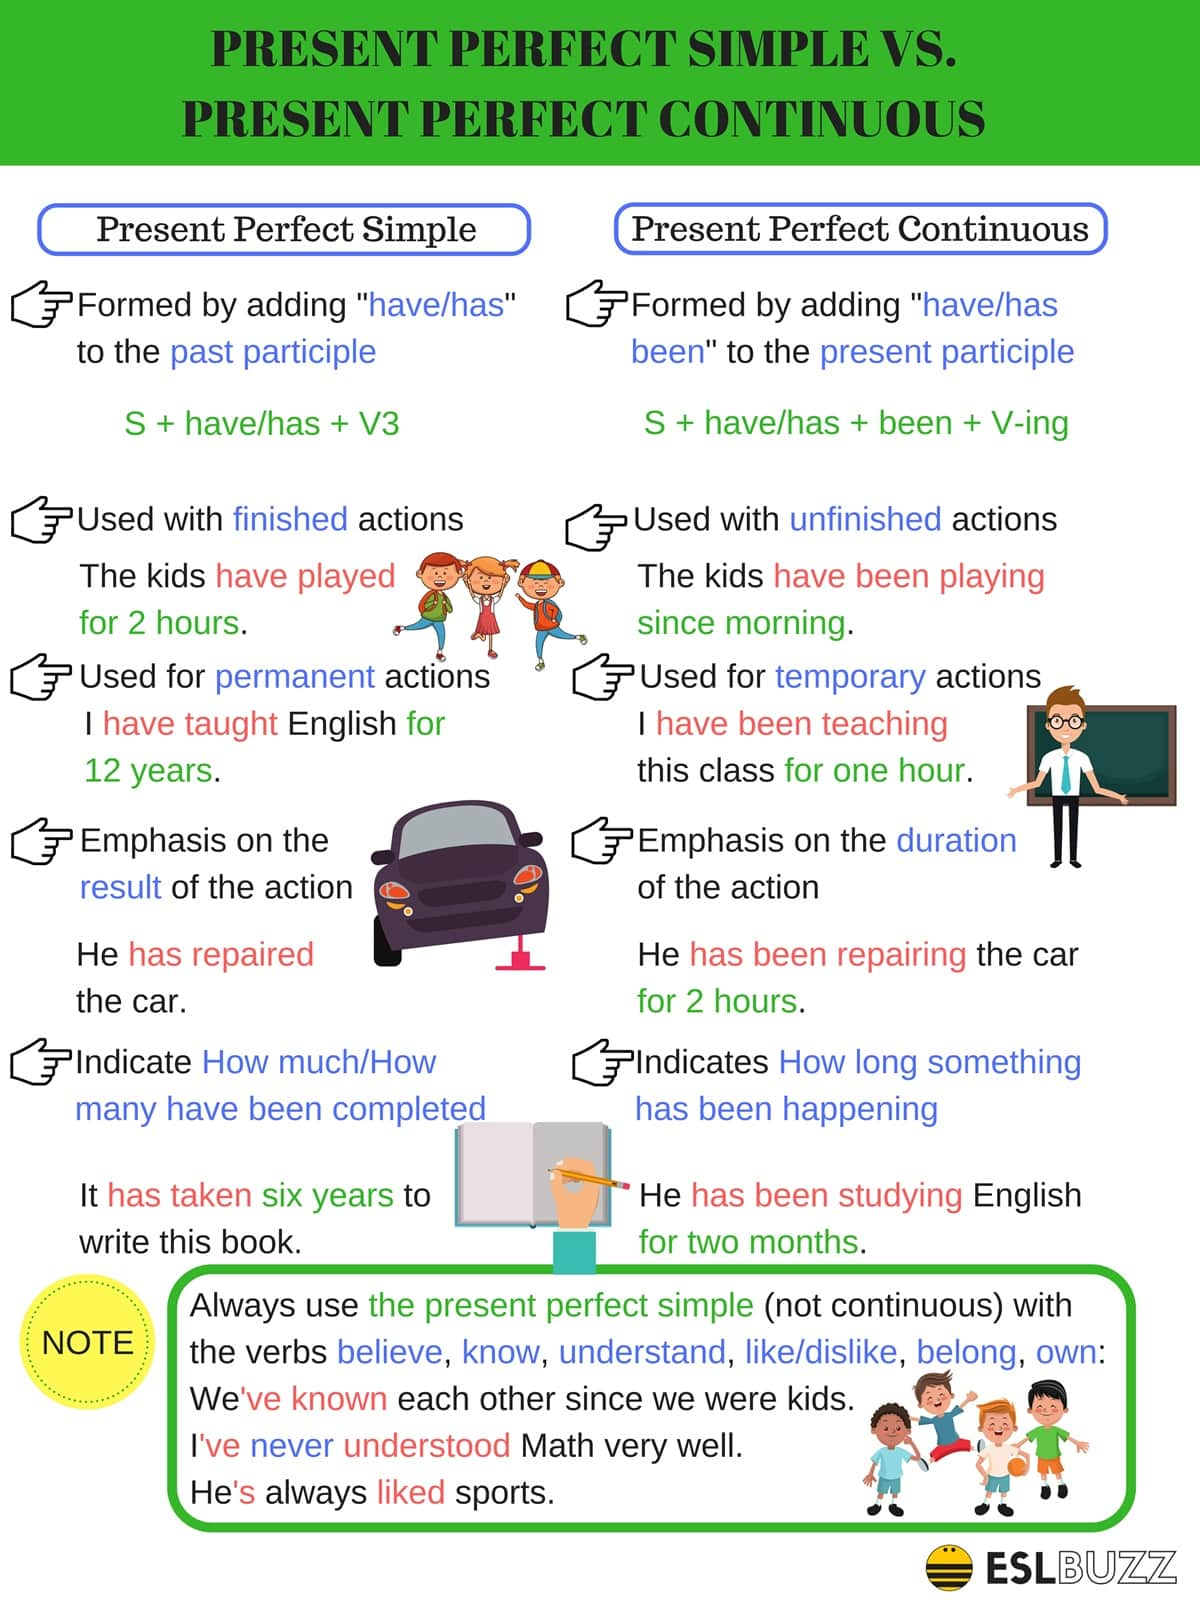 Difference between Present Perfect Simple vs. Present Perfect Continuous